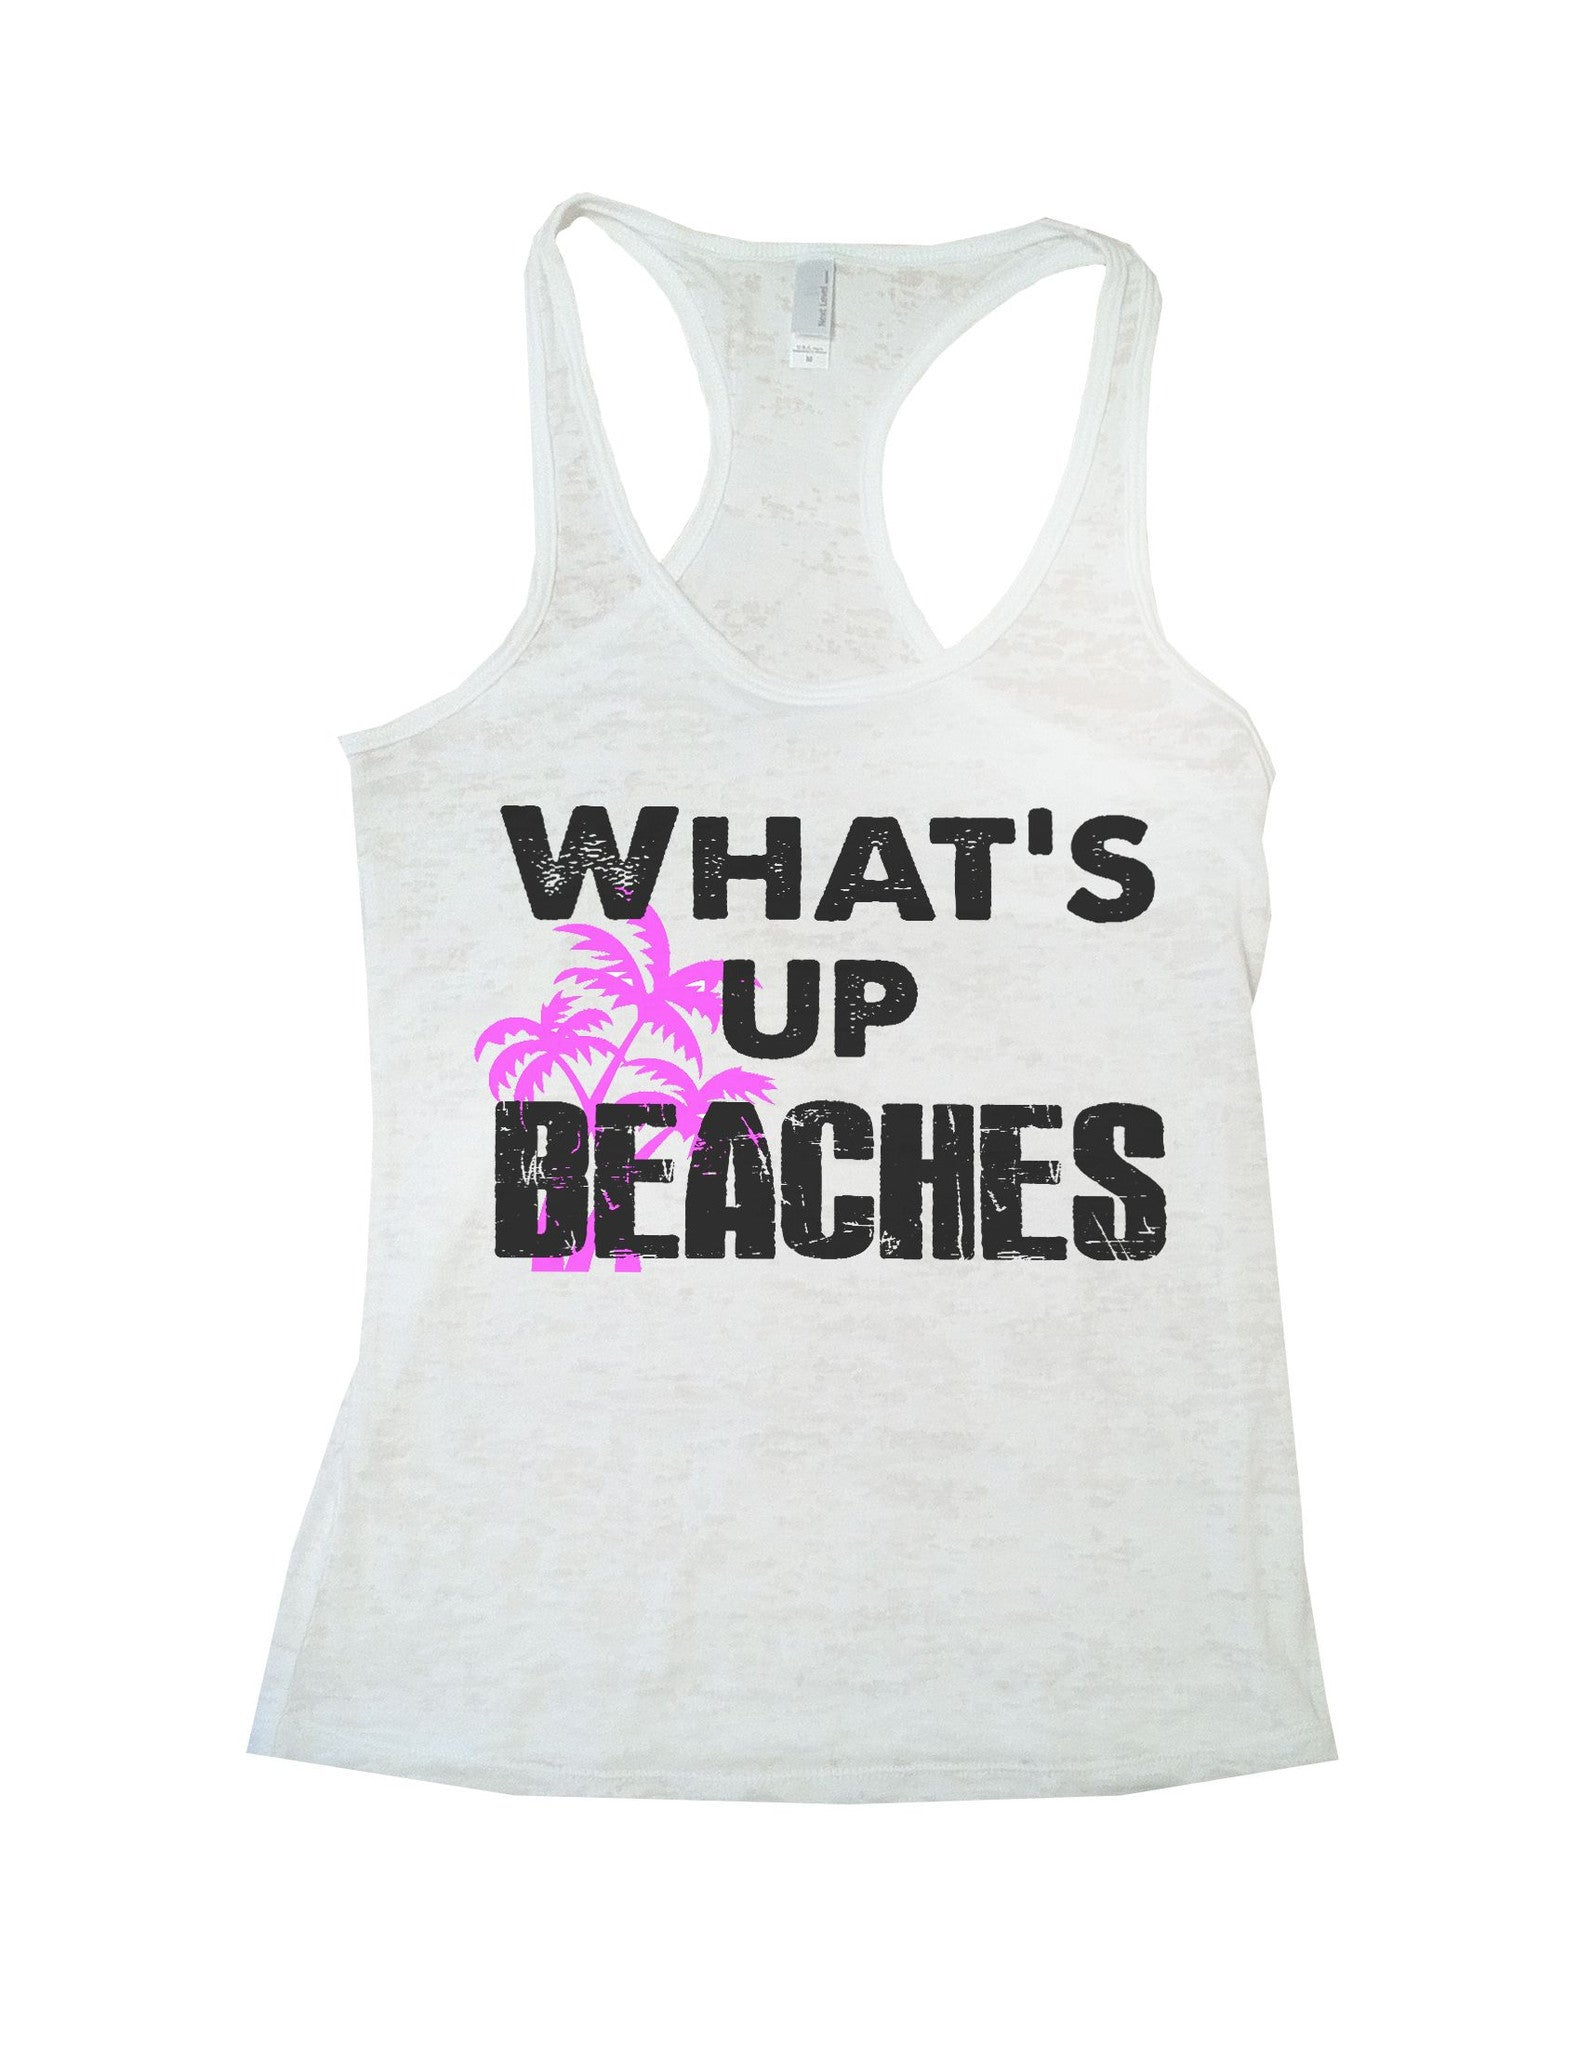 What'S Up Beaches Burnout Tank Top By BurnoutTankTops.com - 759 - Funny Shirts Tank Tops Burnouts and Triblends  - 6